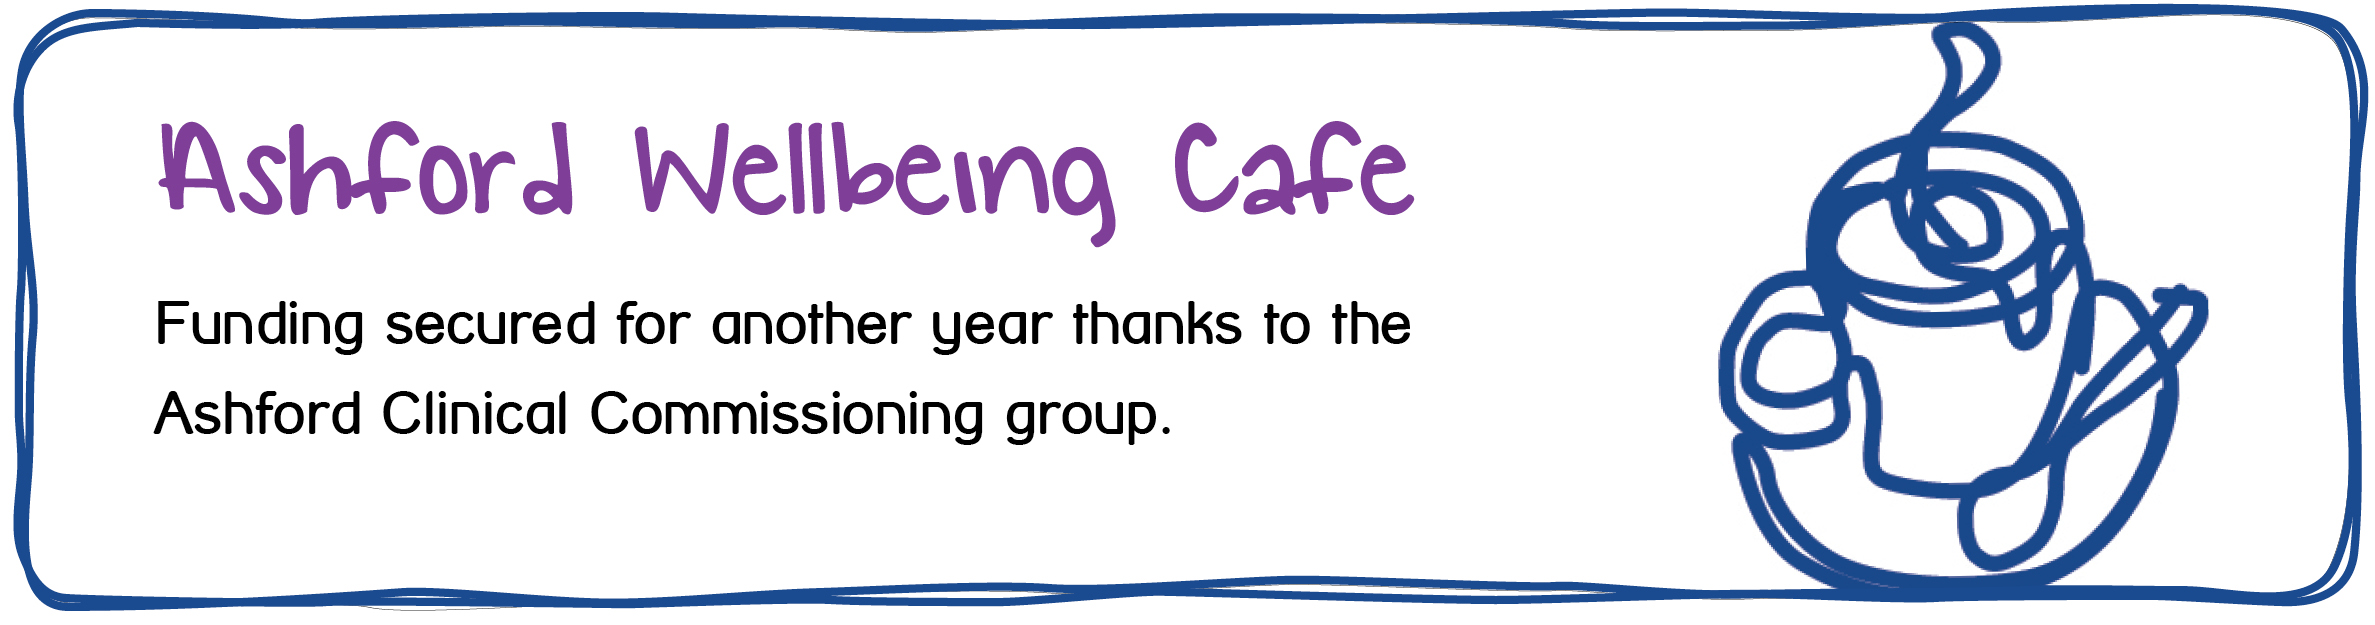 Our Ashford Wellbeing Cafe has secured funding for another year thanks to the Ashford Clinical Commissioning Group.